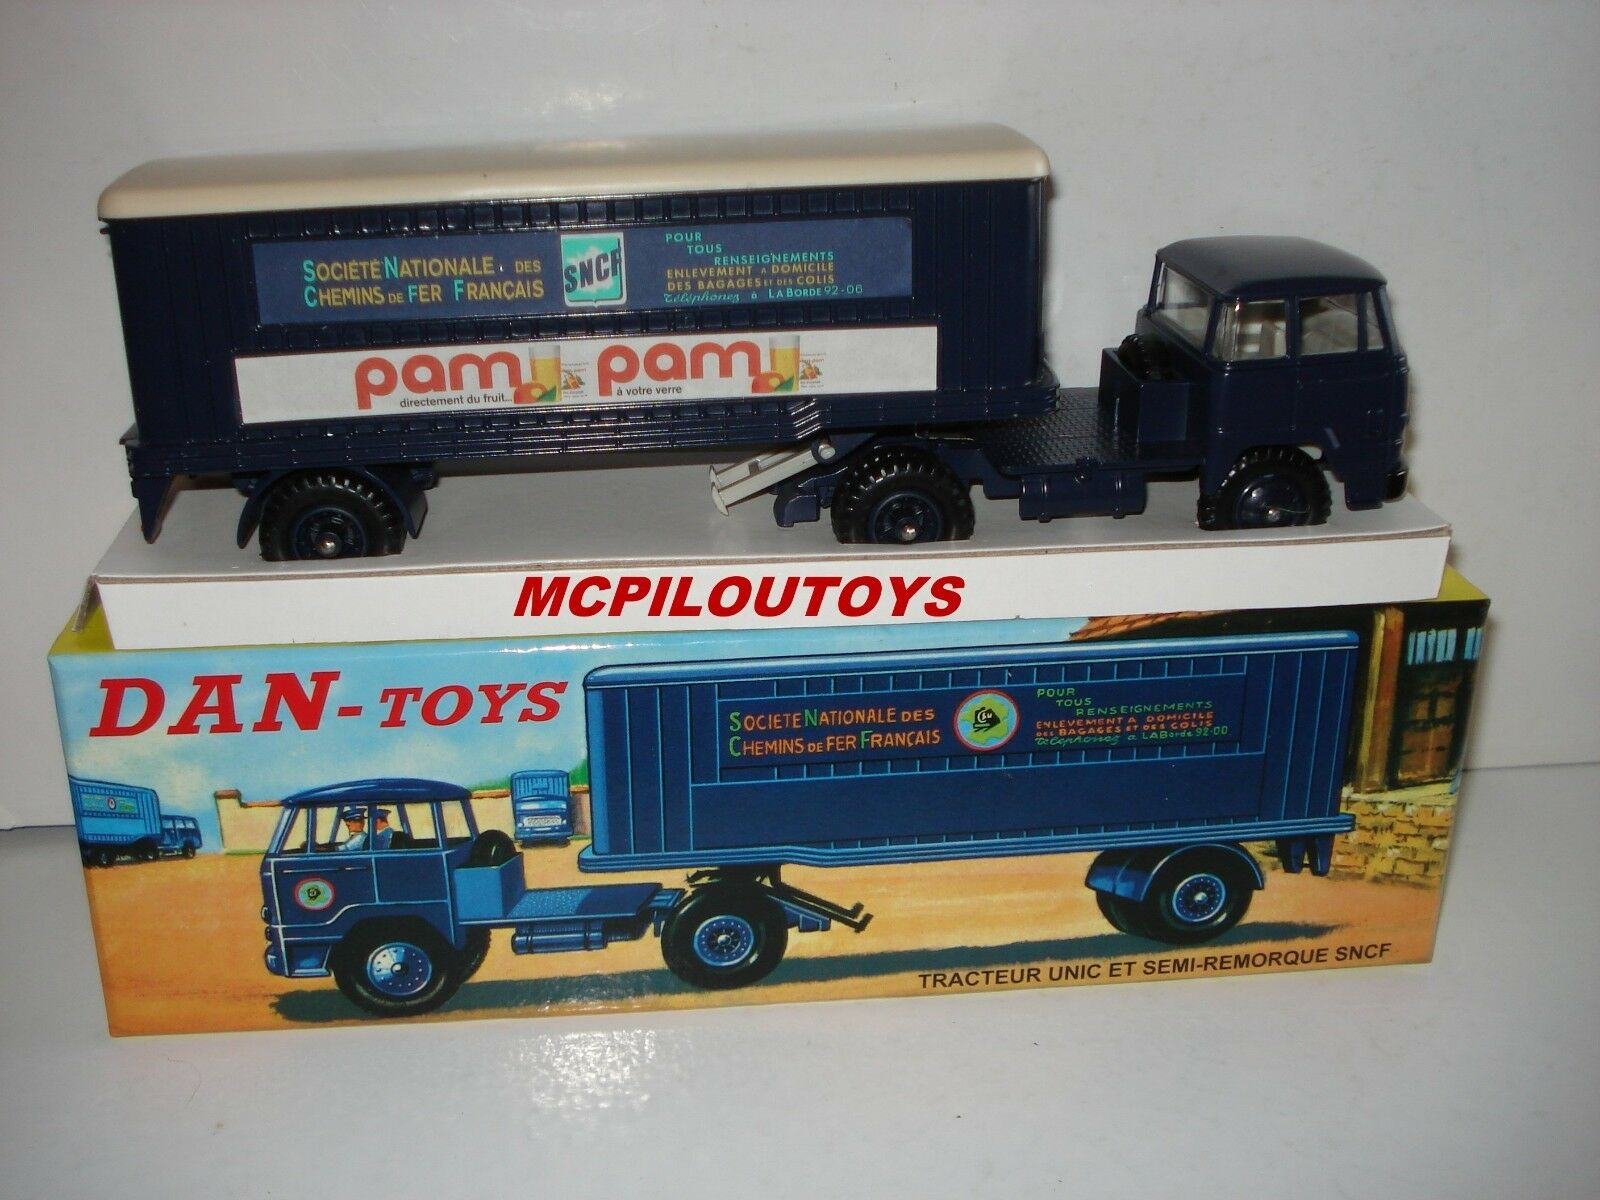 DAN TOYS 004 TRACTOR UNIC WITH MID TRAILER SNCF in the 1 43°